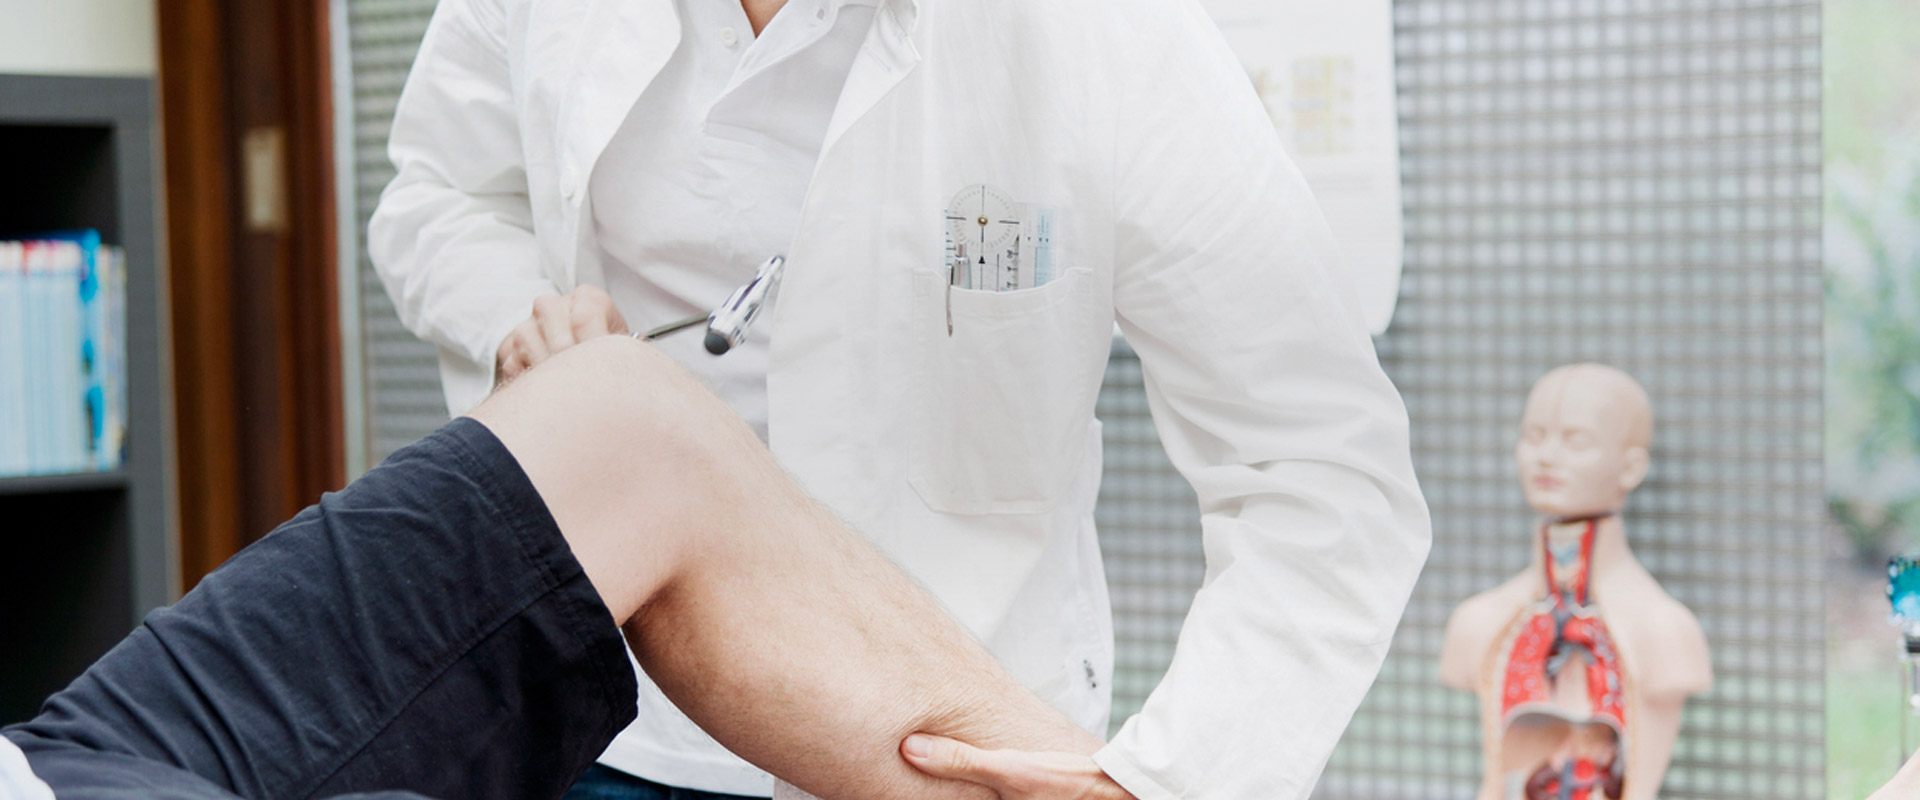 The Orthopedic surgeons at National Orthopedics have a wide and diverse background.